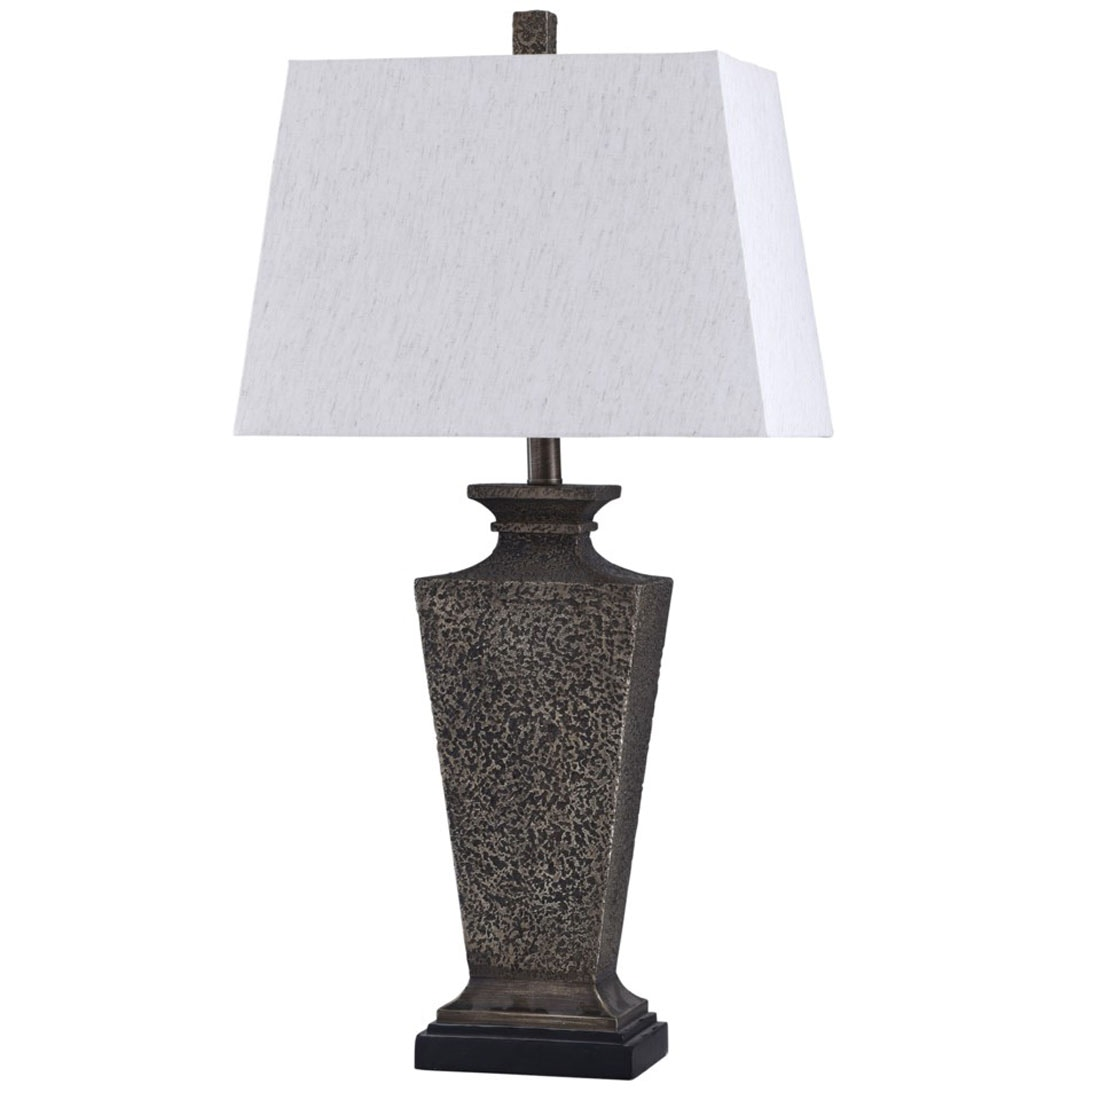 Stylecraft Lamps Brown Base Table Lamp 059308